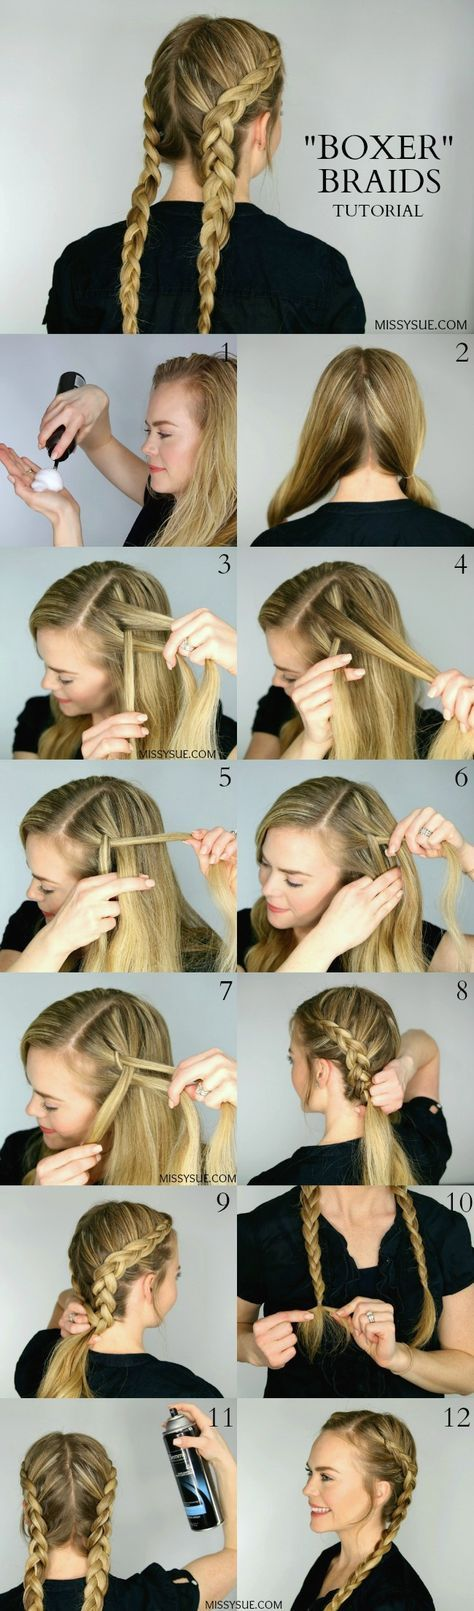 "Boxer braids are everything. They are currently the ""it"" hairstyle and blowing up on Instagram. If you haven't mastered them yet then now is your chance! This hairstyle is quick and easy and not only perfect for every day but an awesome heat-less style and great…"